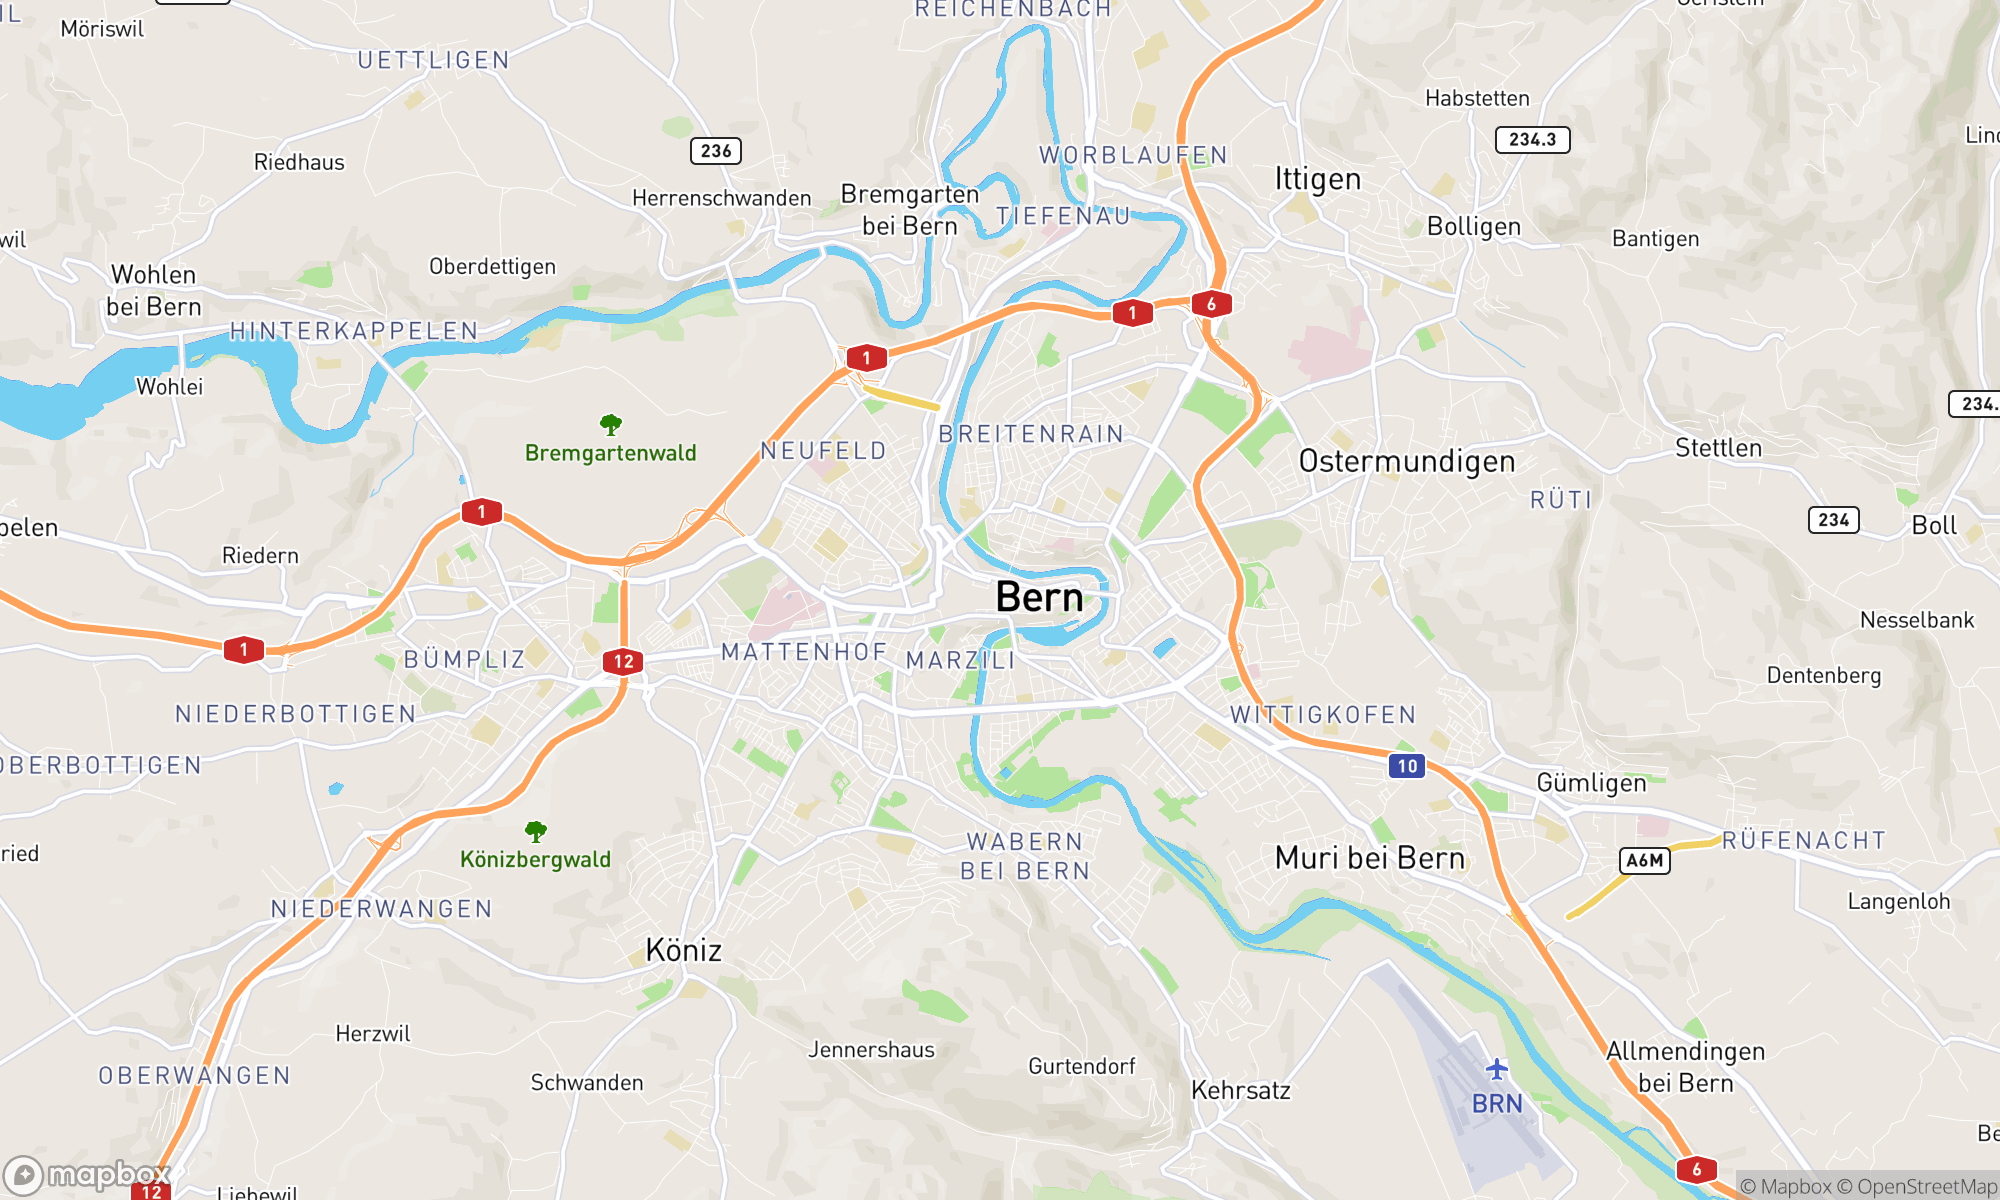 Map of Bern area